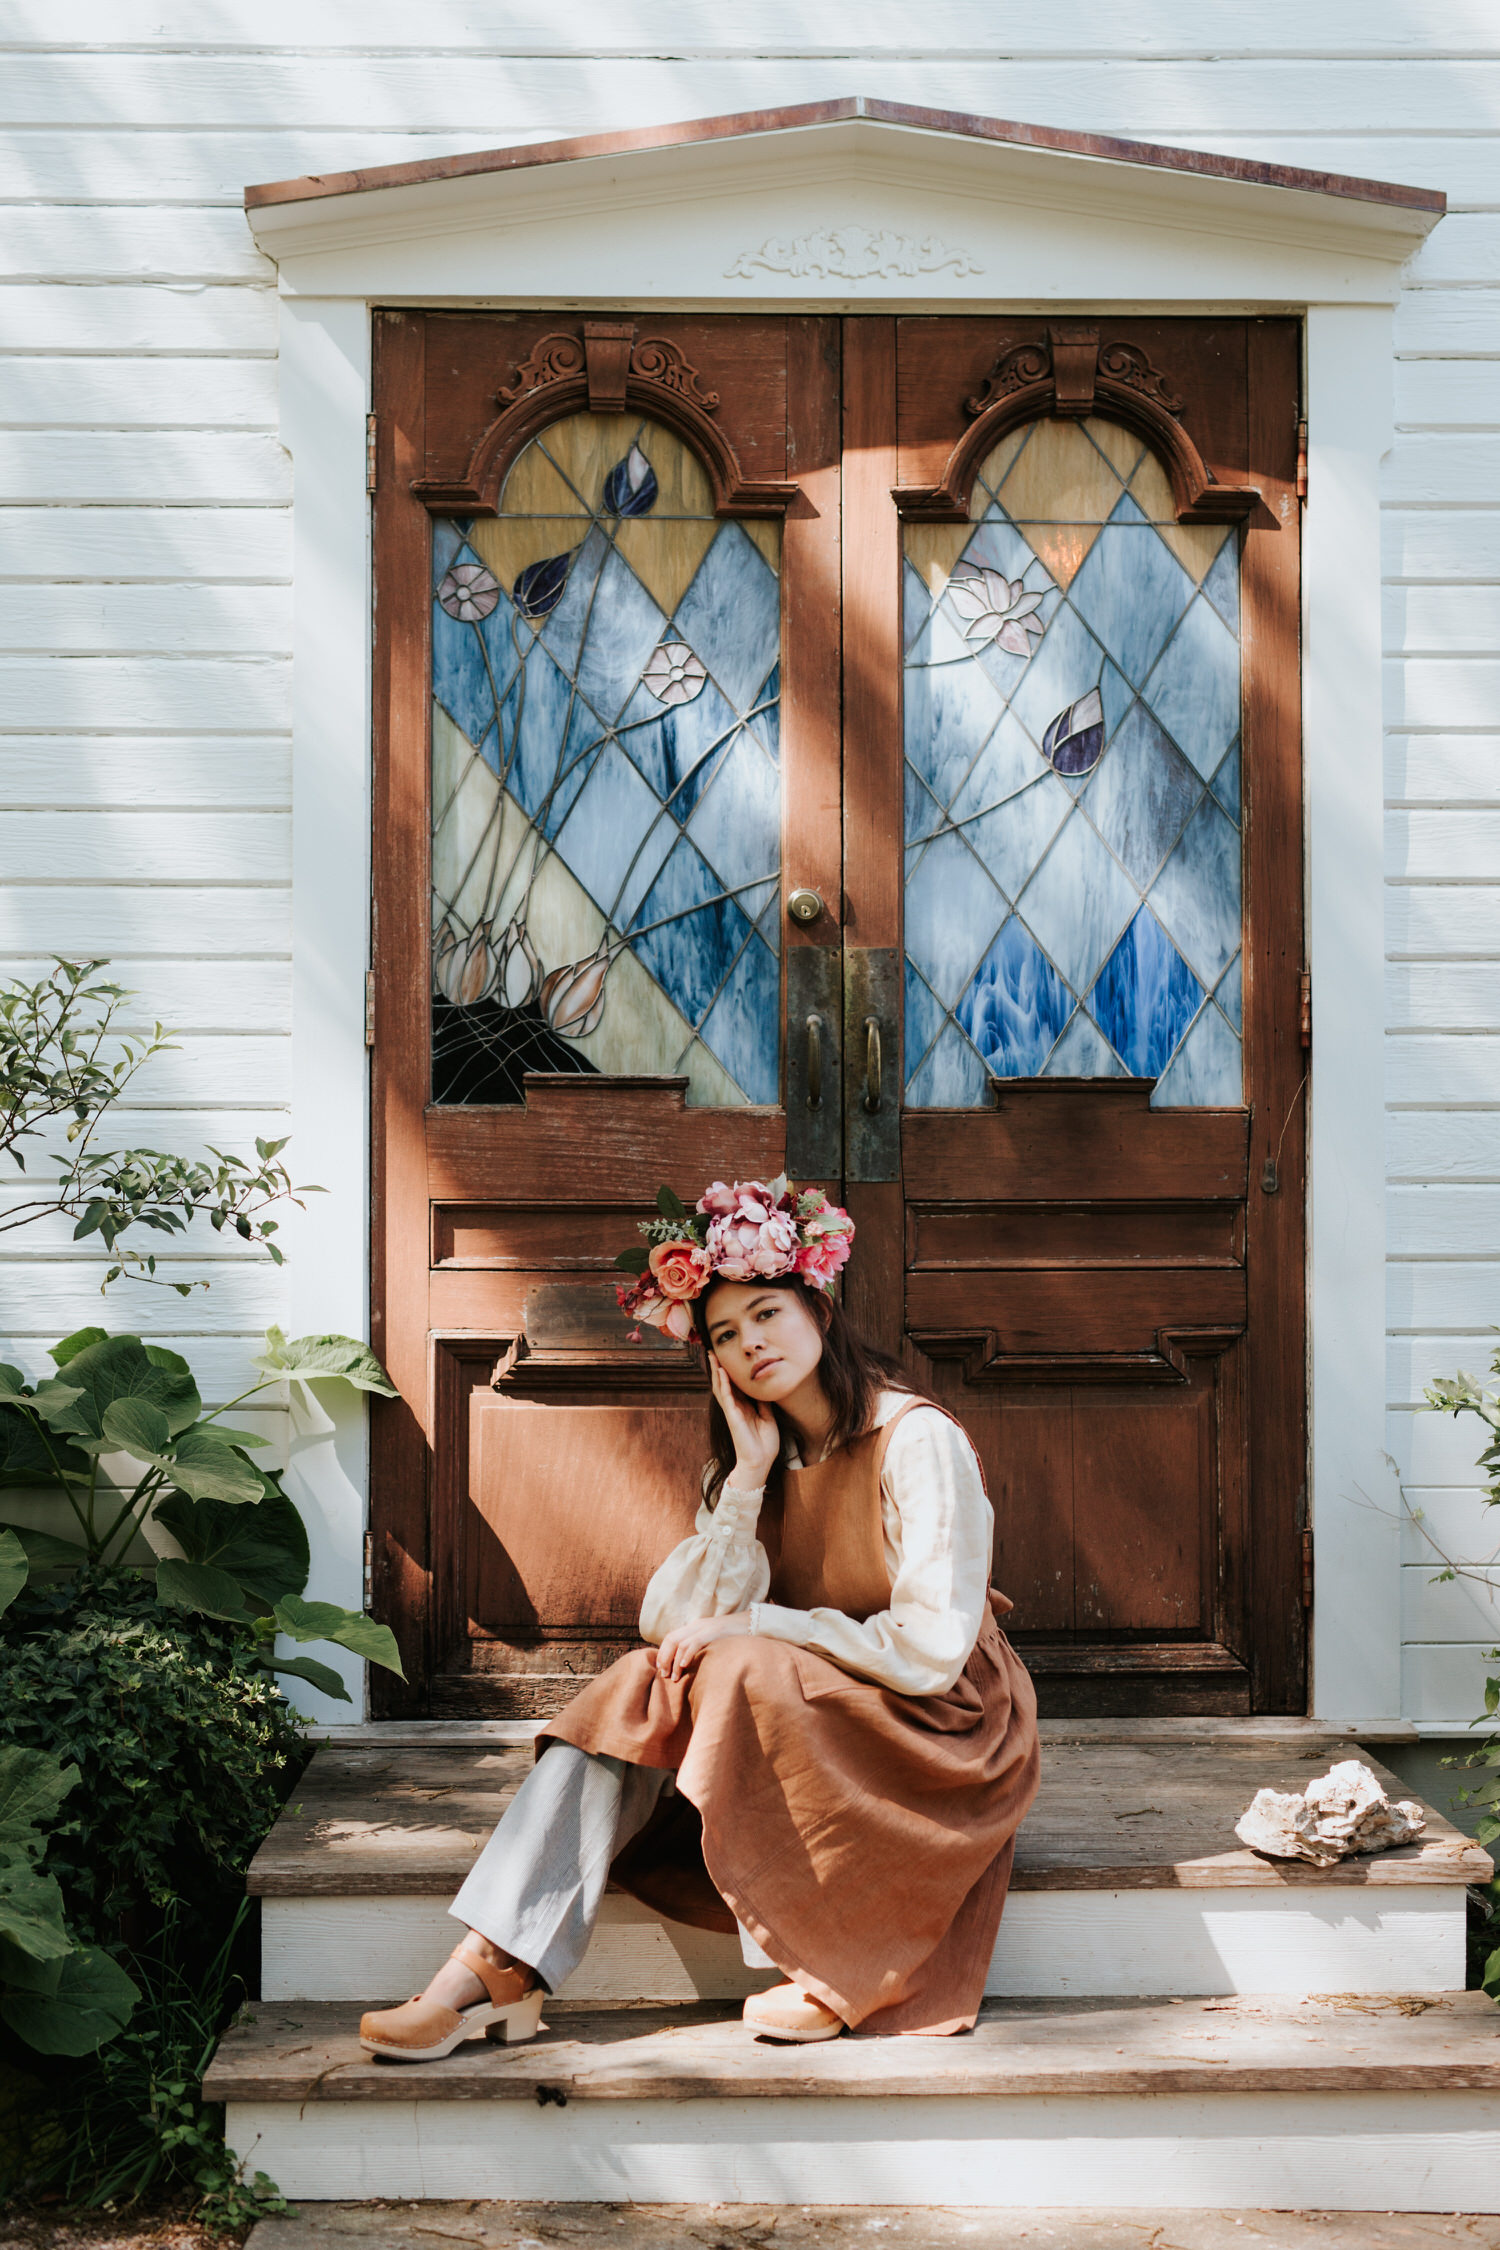 Model in flower crown and vintage clothing in front of stained glass